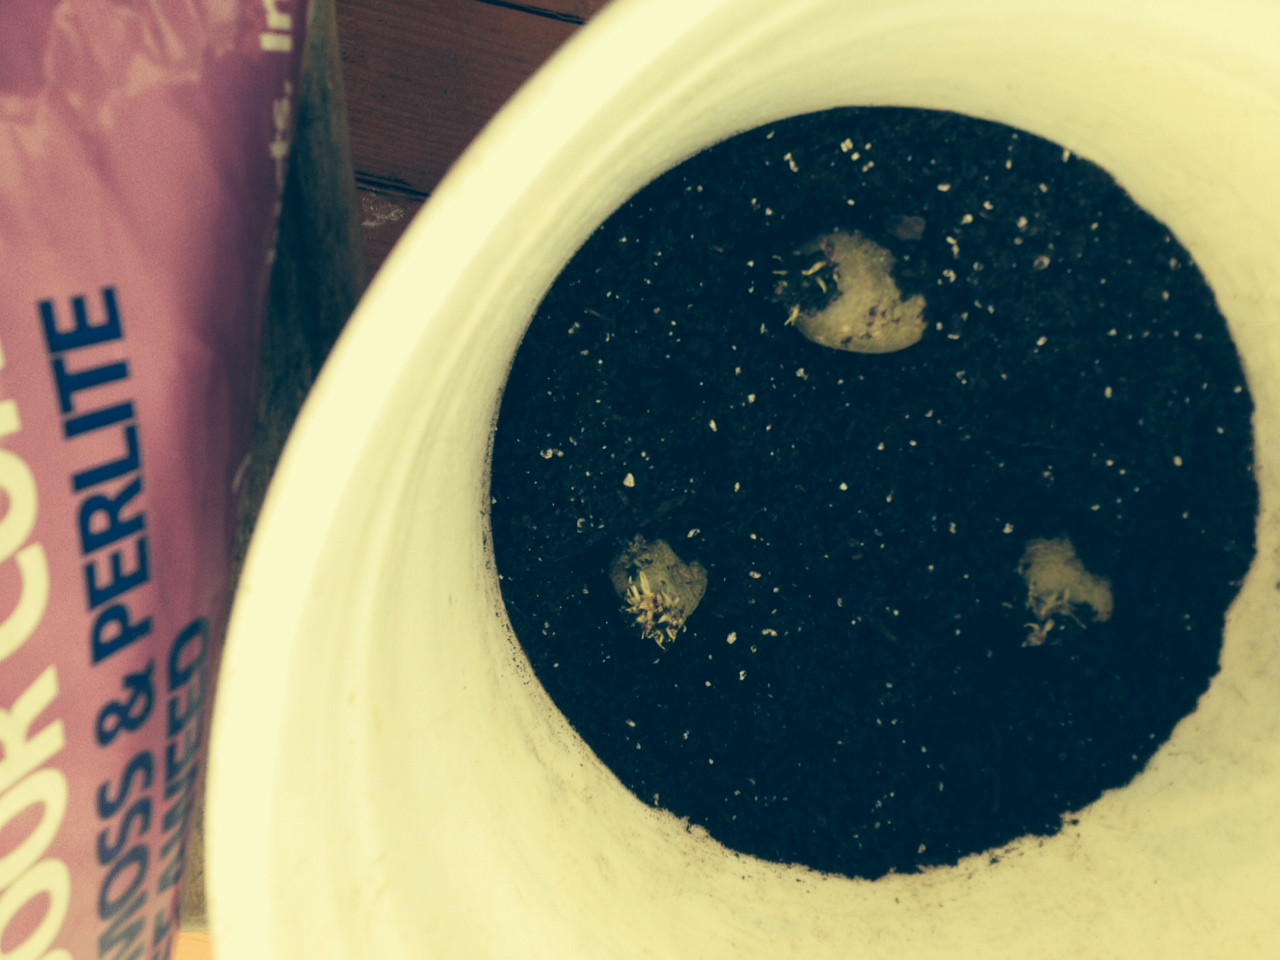 A white bucket with 3 little seed potatoes spaced out in the soil. A bag of potting soil is close by on the left.